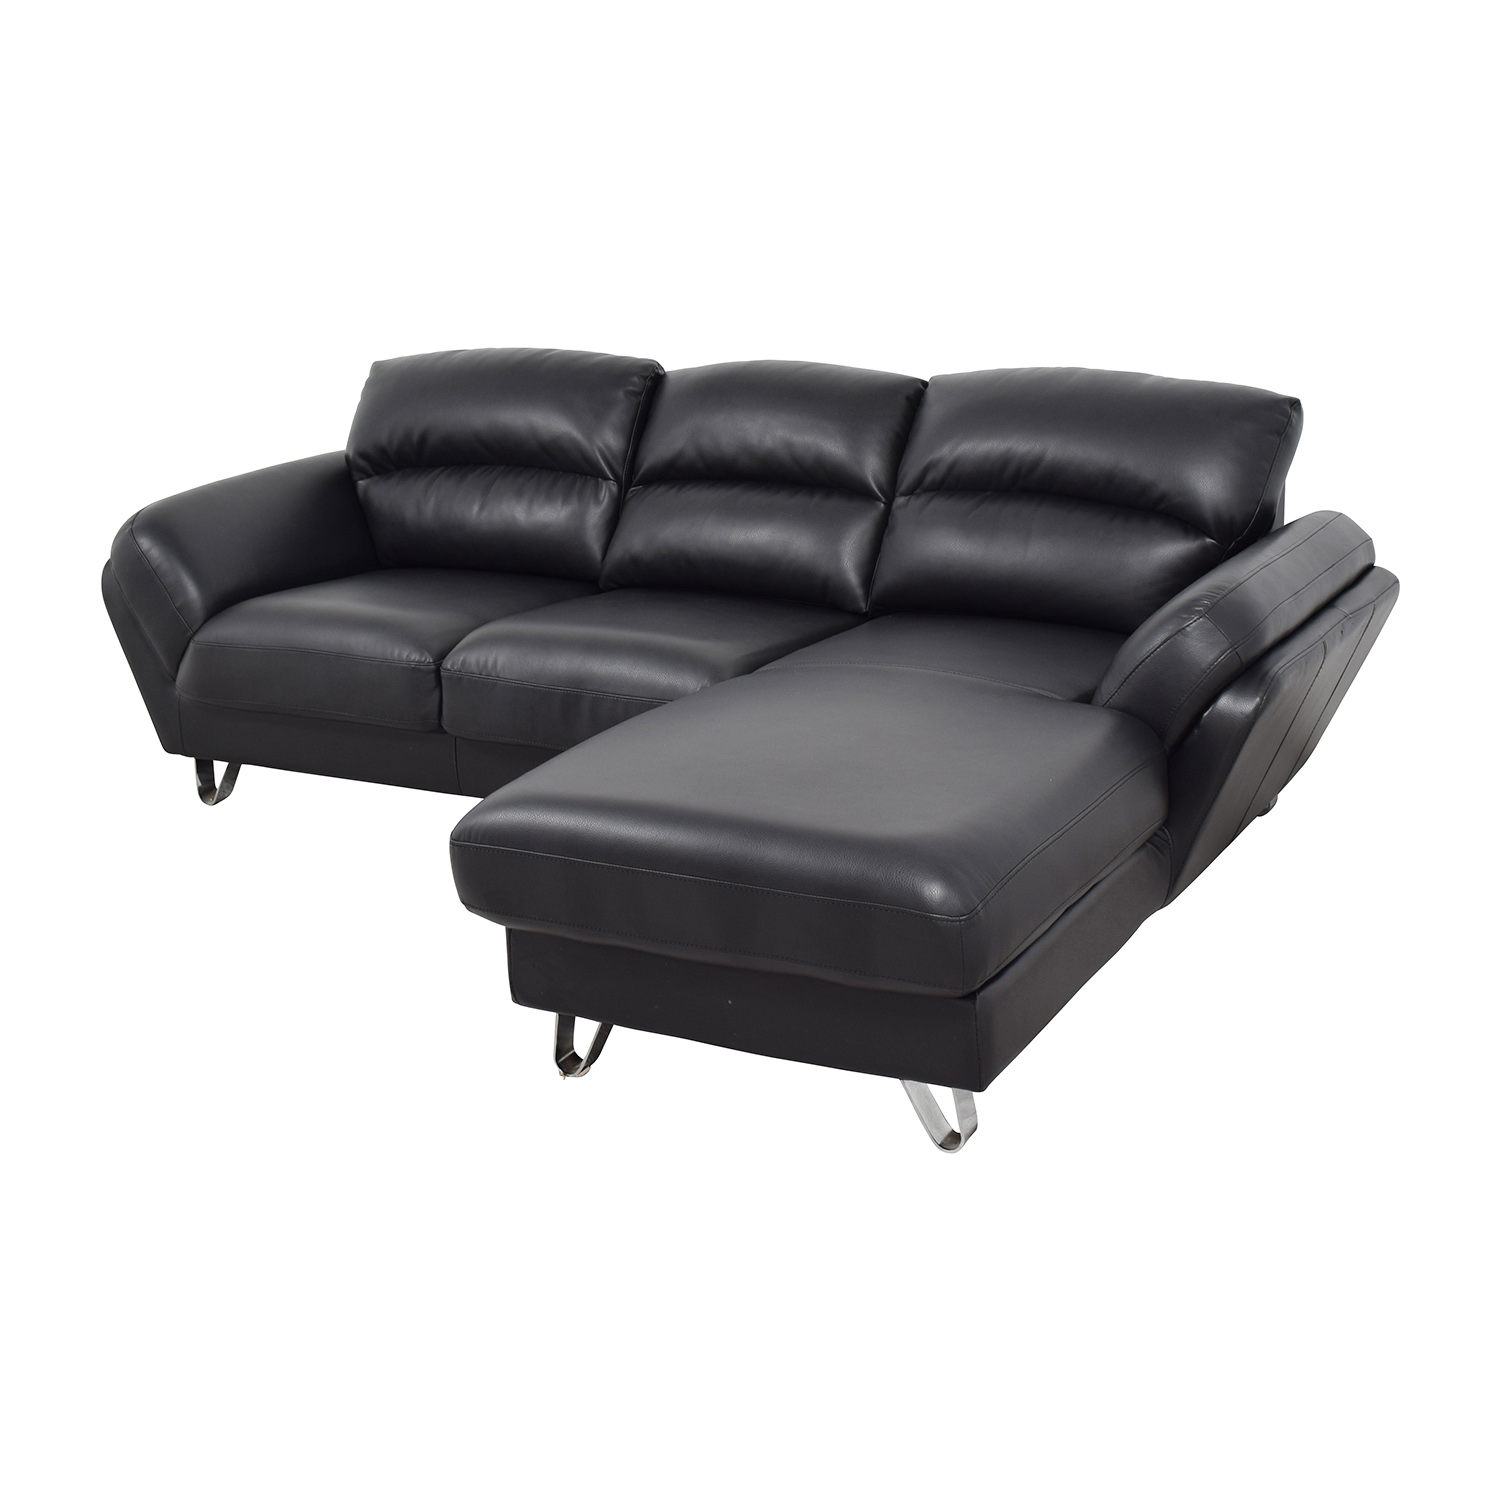 Contemporary Faux Leather Two-piece Sectional Sofa on sale